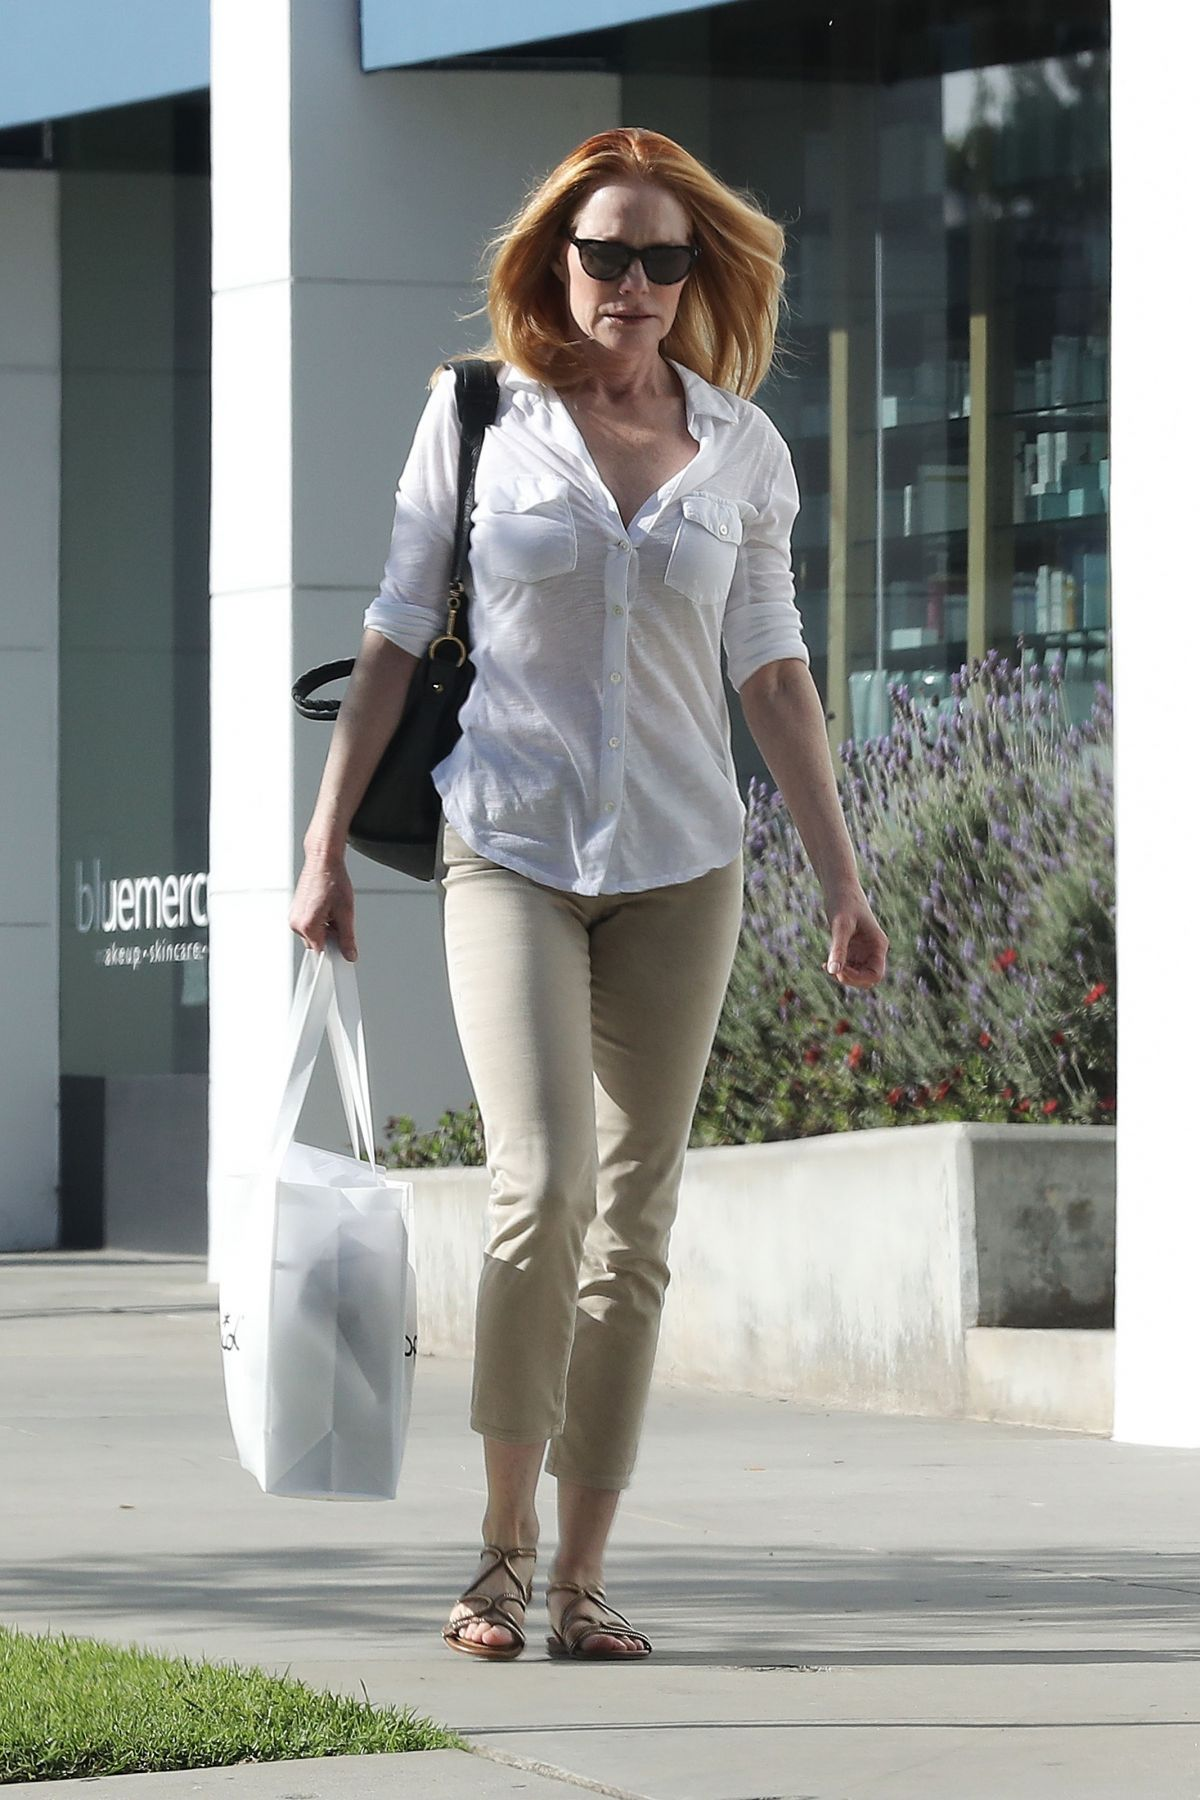 Marg helgenberger casual style shopping at splendid in santa monica - 2019 year